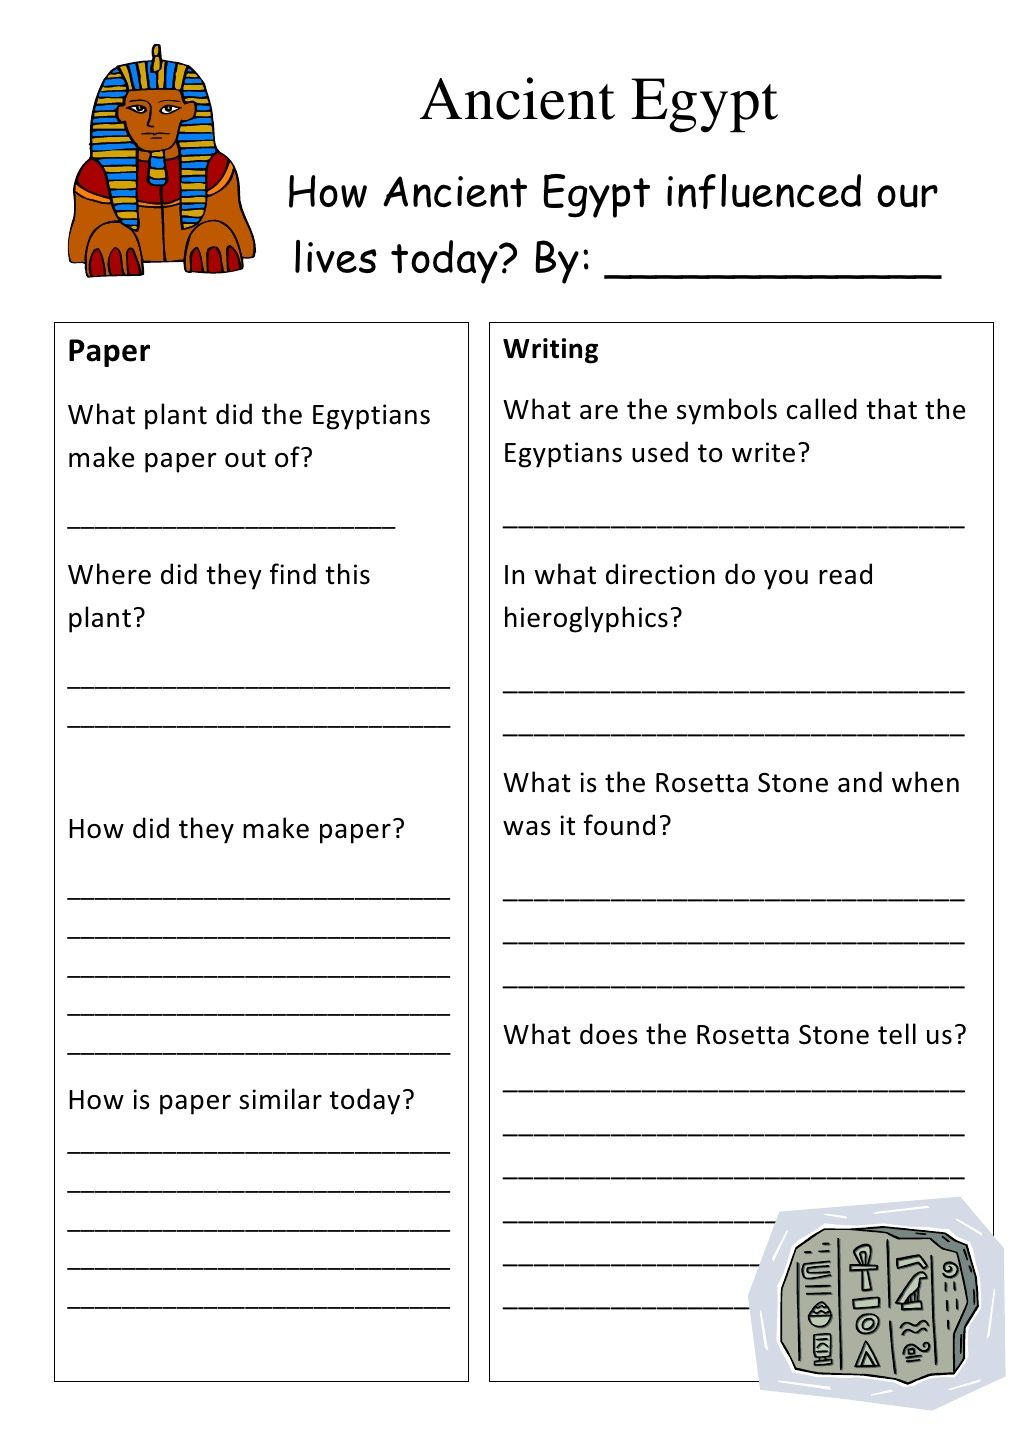 Ancient Egypt Worksheet By 7gchaffey Via Slideshare